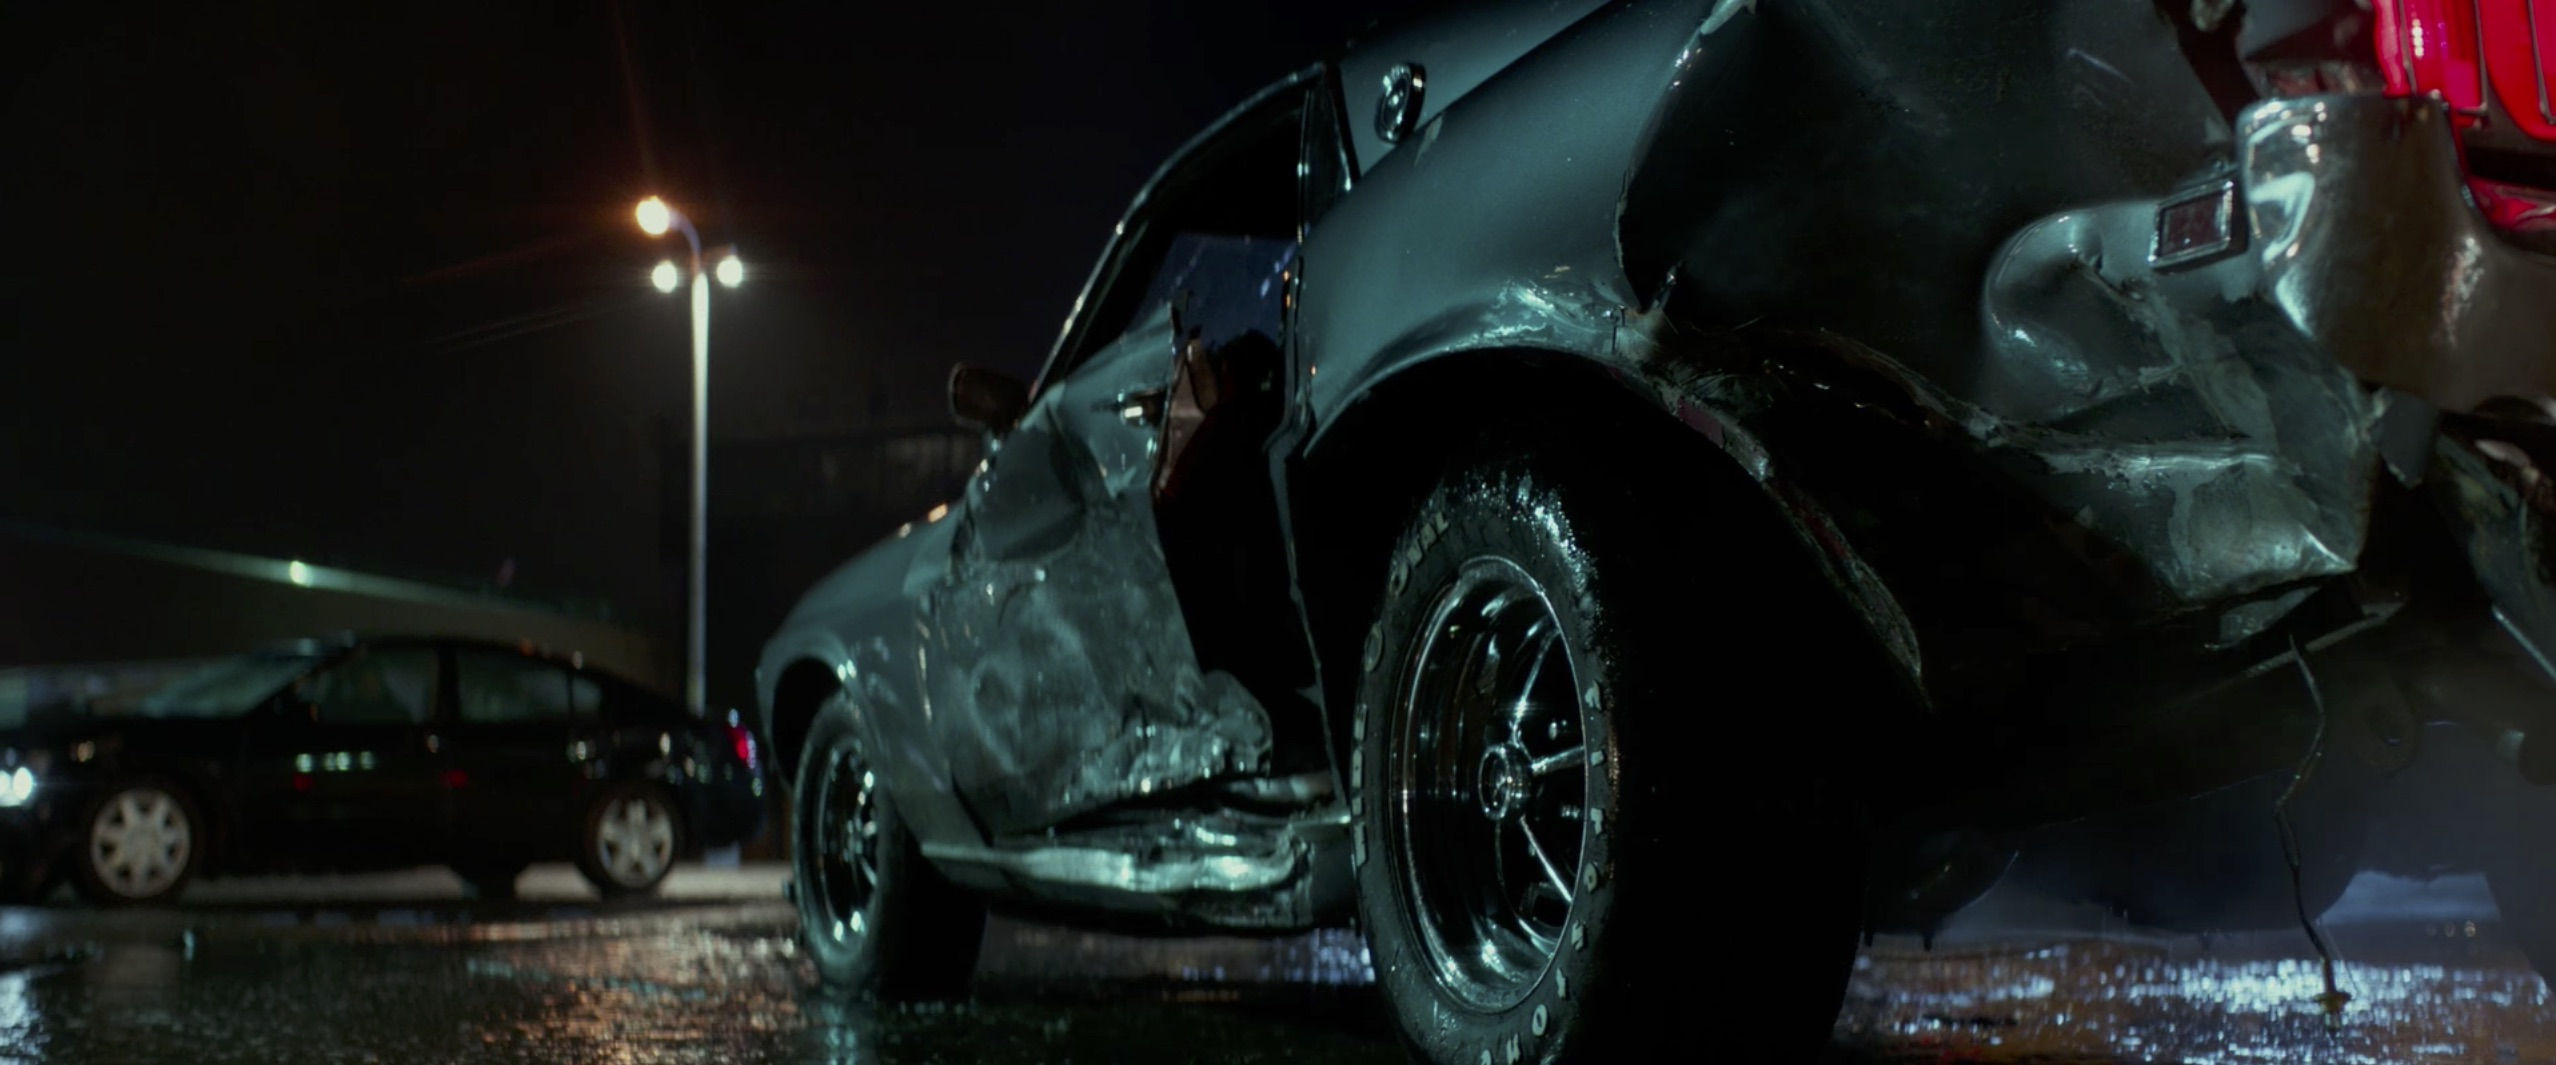 John Wick: Chapter 2 mustang crashed up